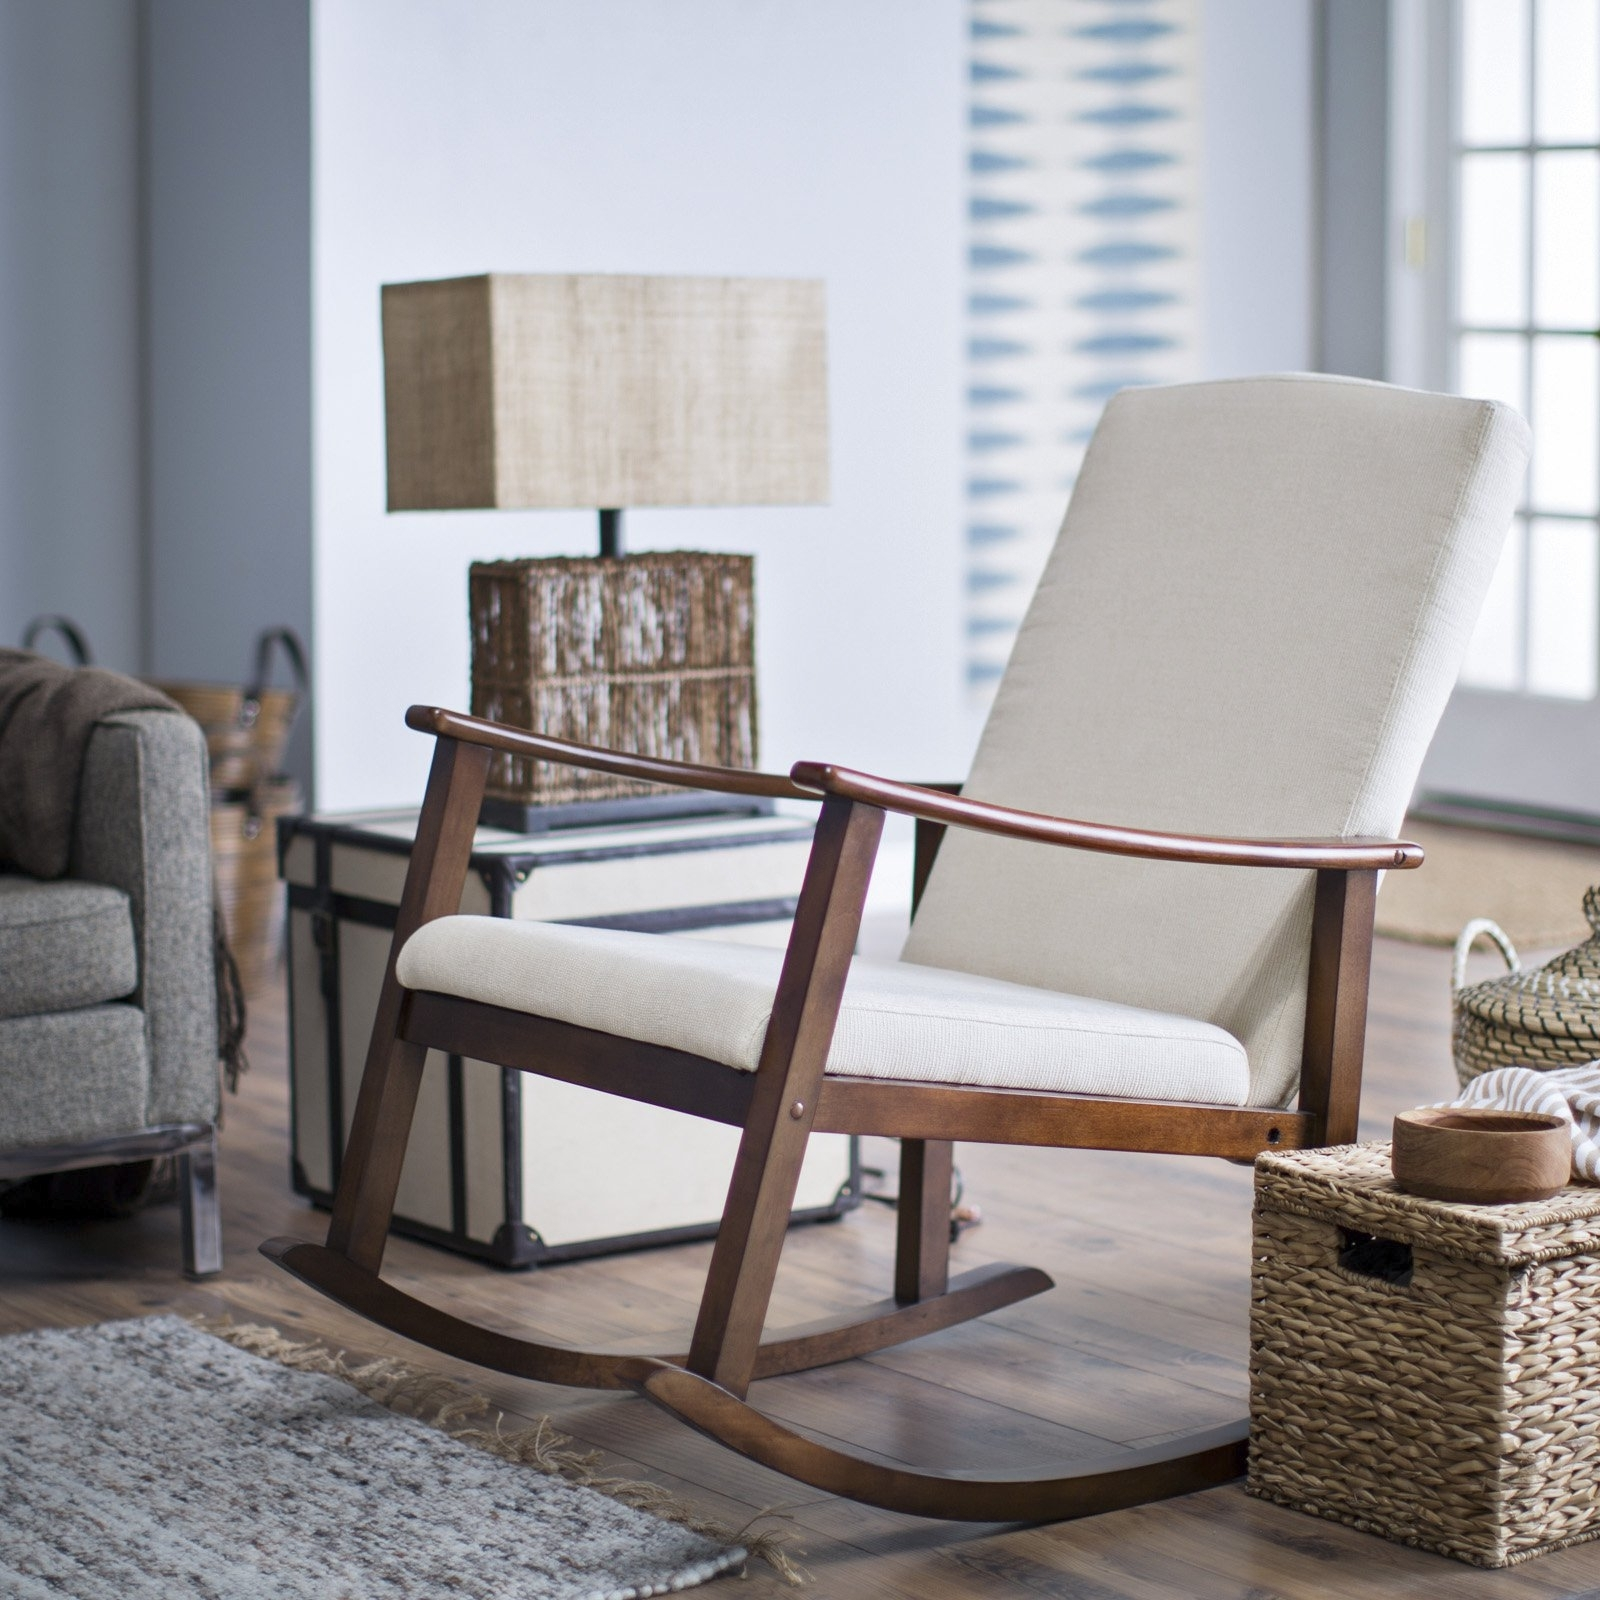 Belham Living Holden Modern Indoor Rocking Chair – Upholstered Regarding Most Current Rocking Chairs For Living Room (View 2 of 15)